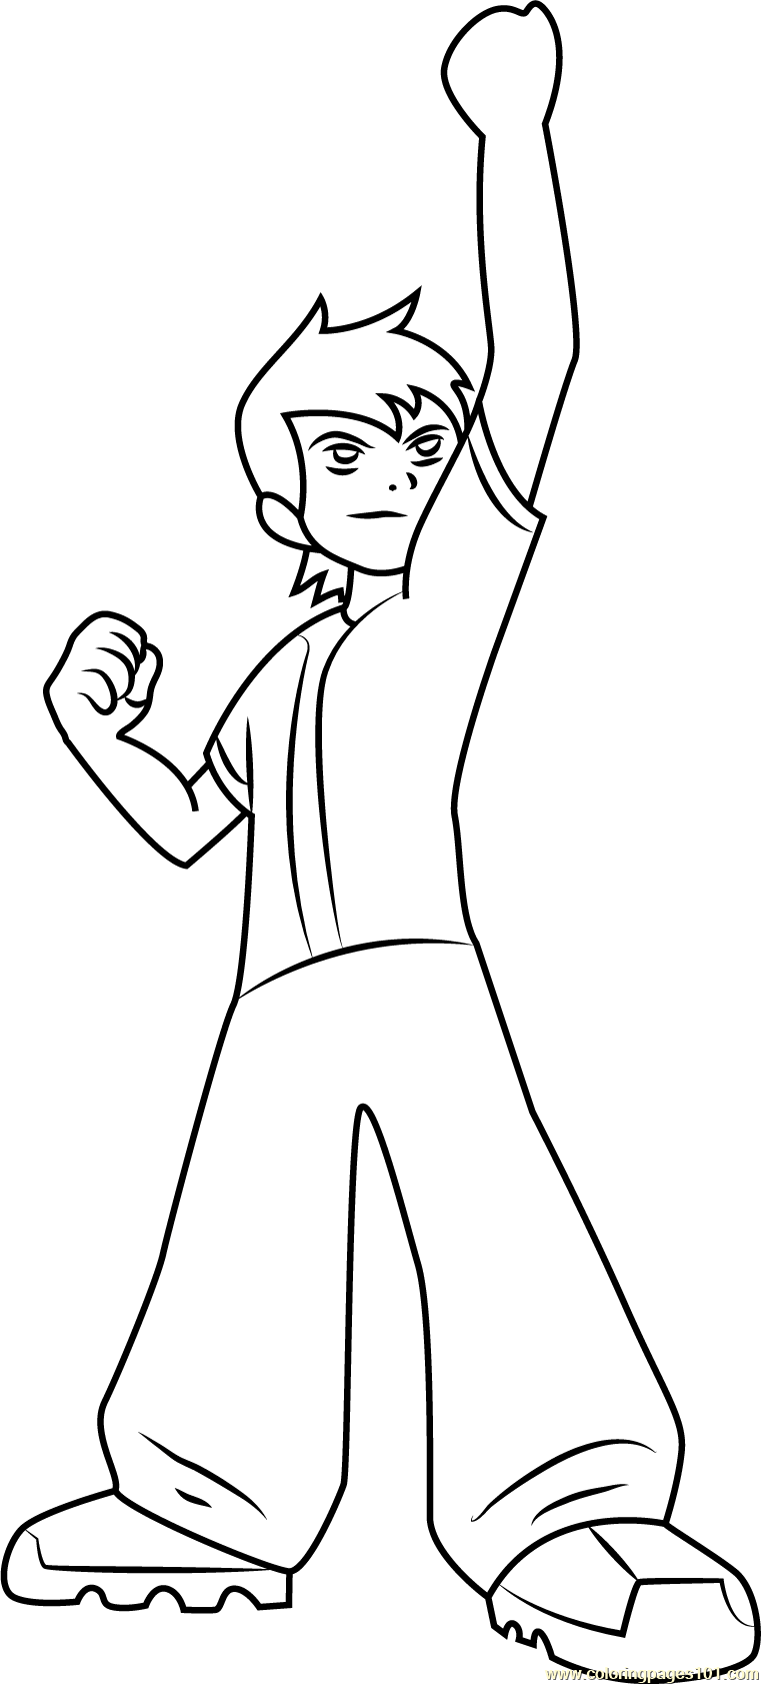 Ben 10 See Up Coloring Page Free Ben 10 Coloring Pages